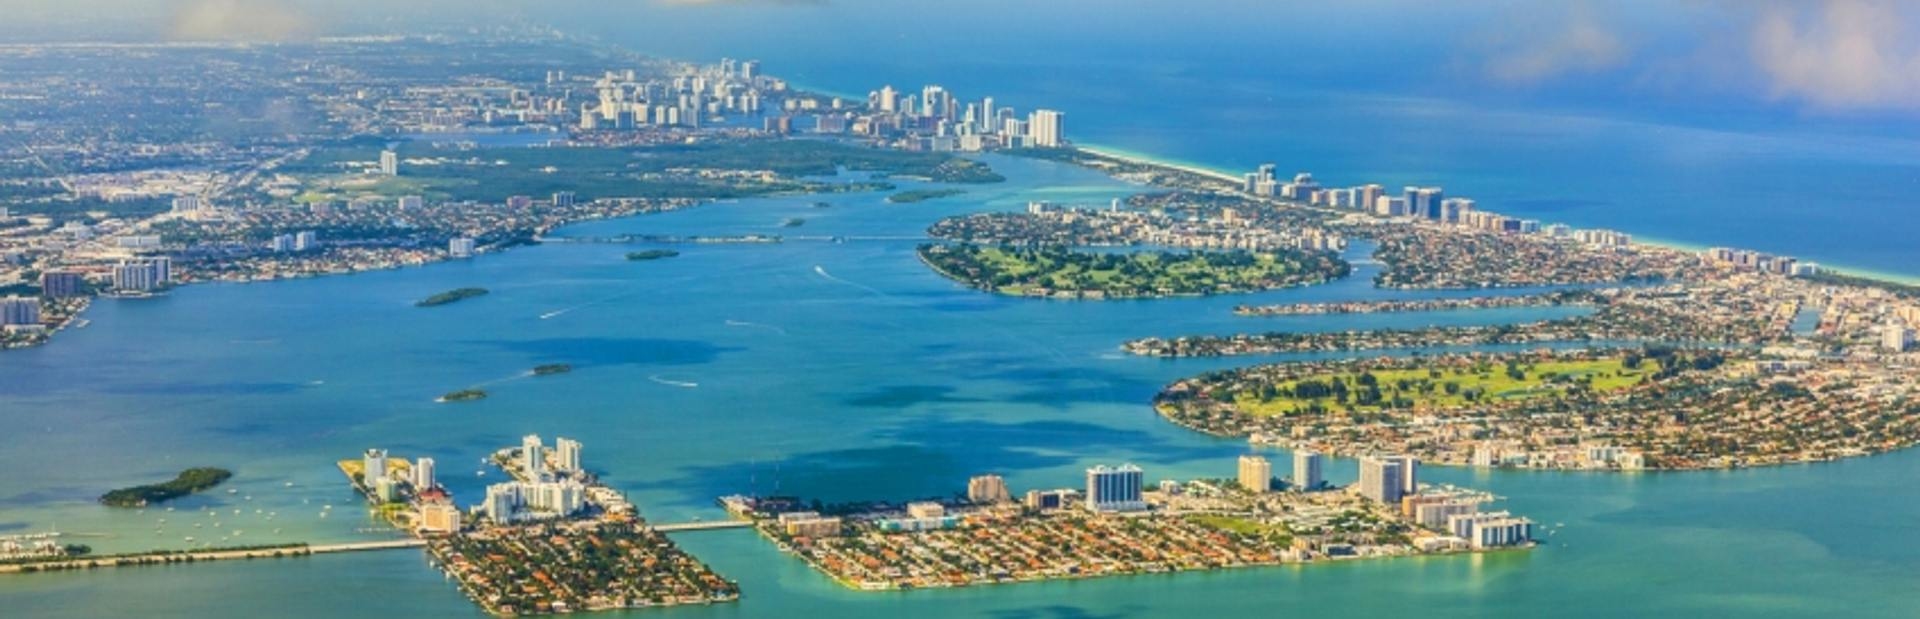 Experience the Unique Way of Life in Key West